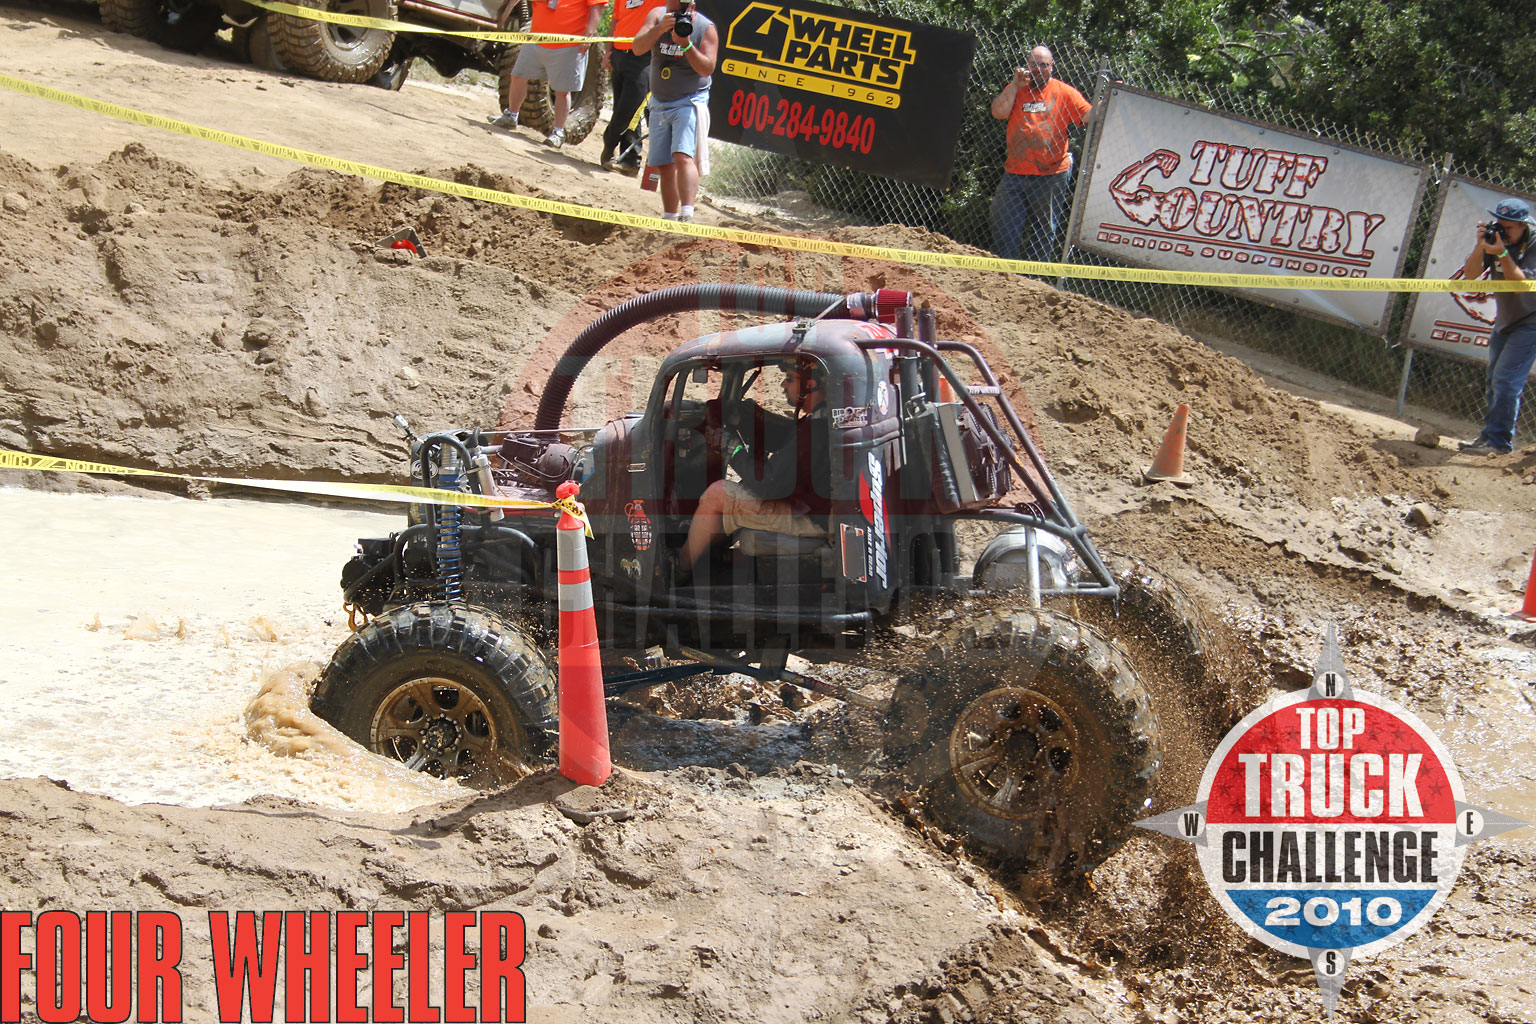 2010 Top Truck Challenge Obstacle Course Kevin Simmons 1937 Ford Pickup